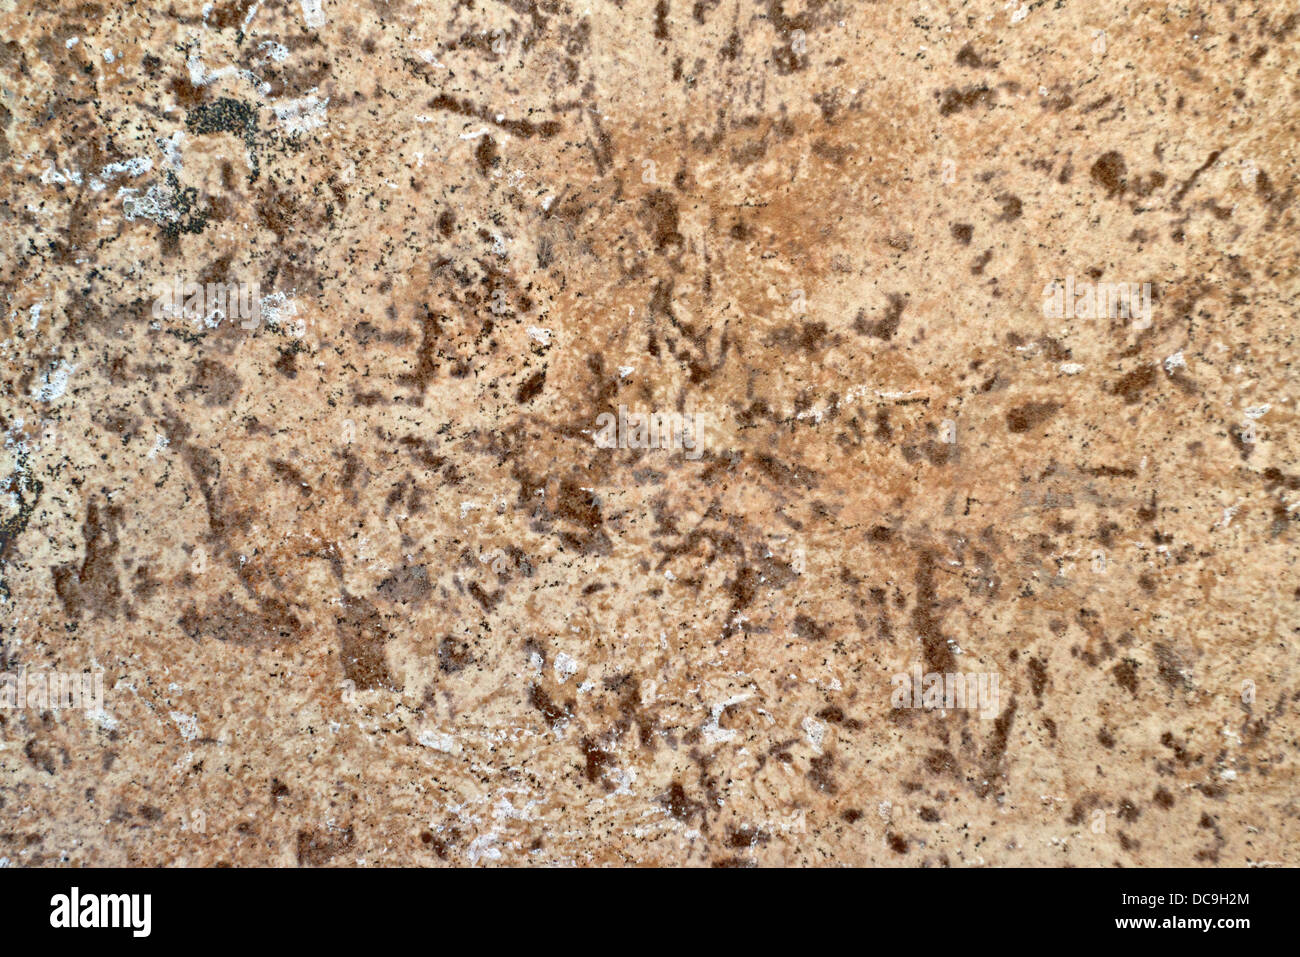 Ceramic Tile Texture Beige Mosaic Ceramic Tiles Texture For Wall Or